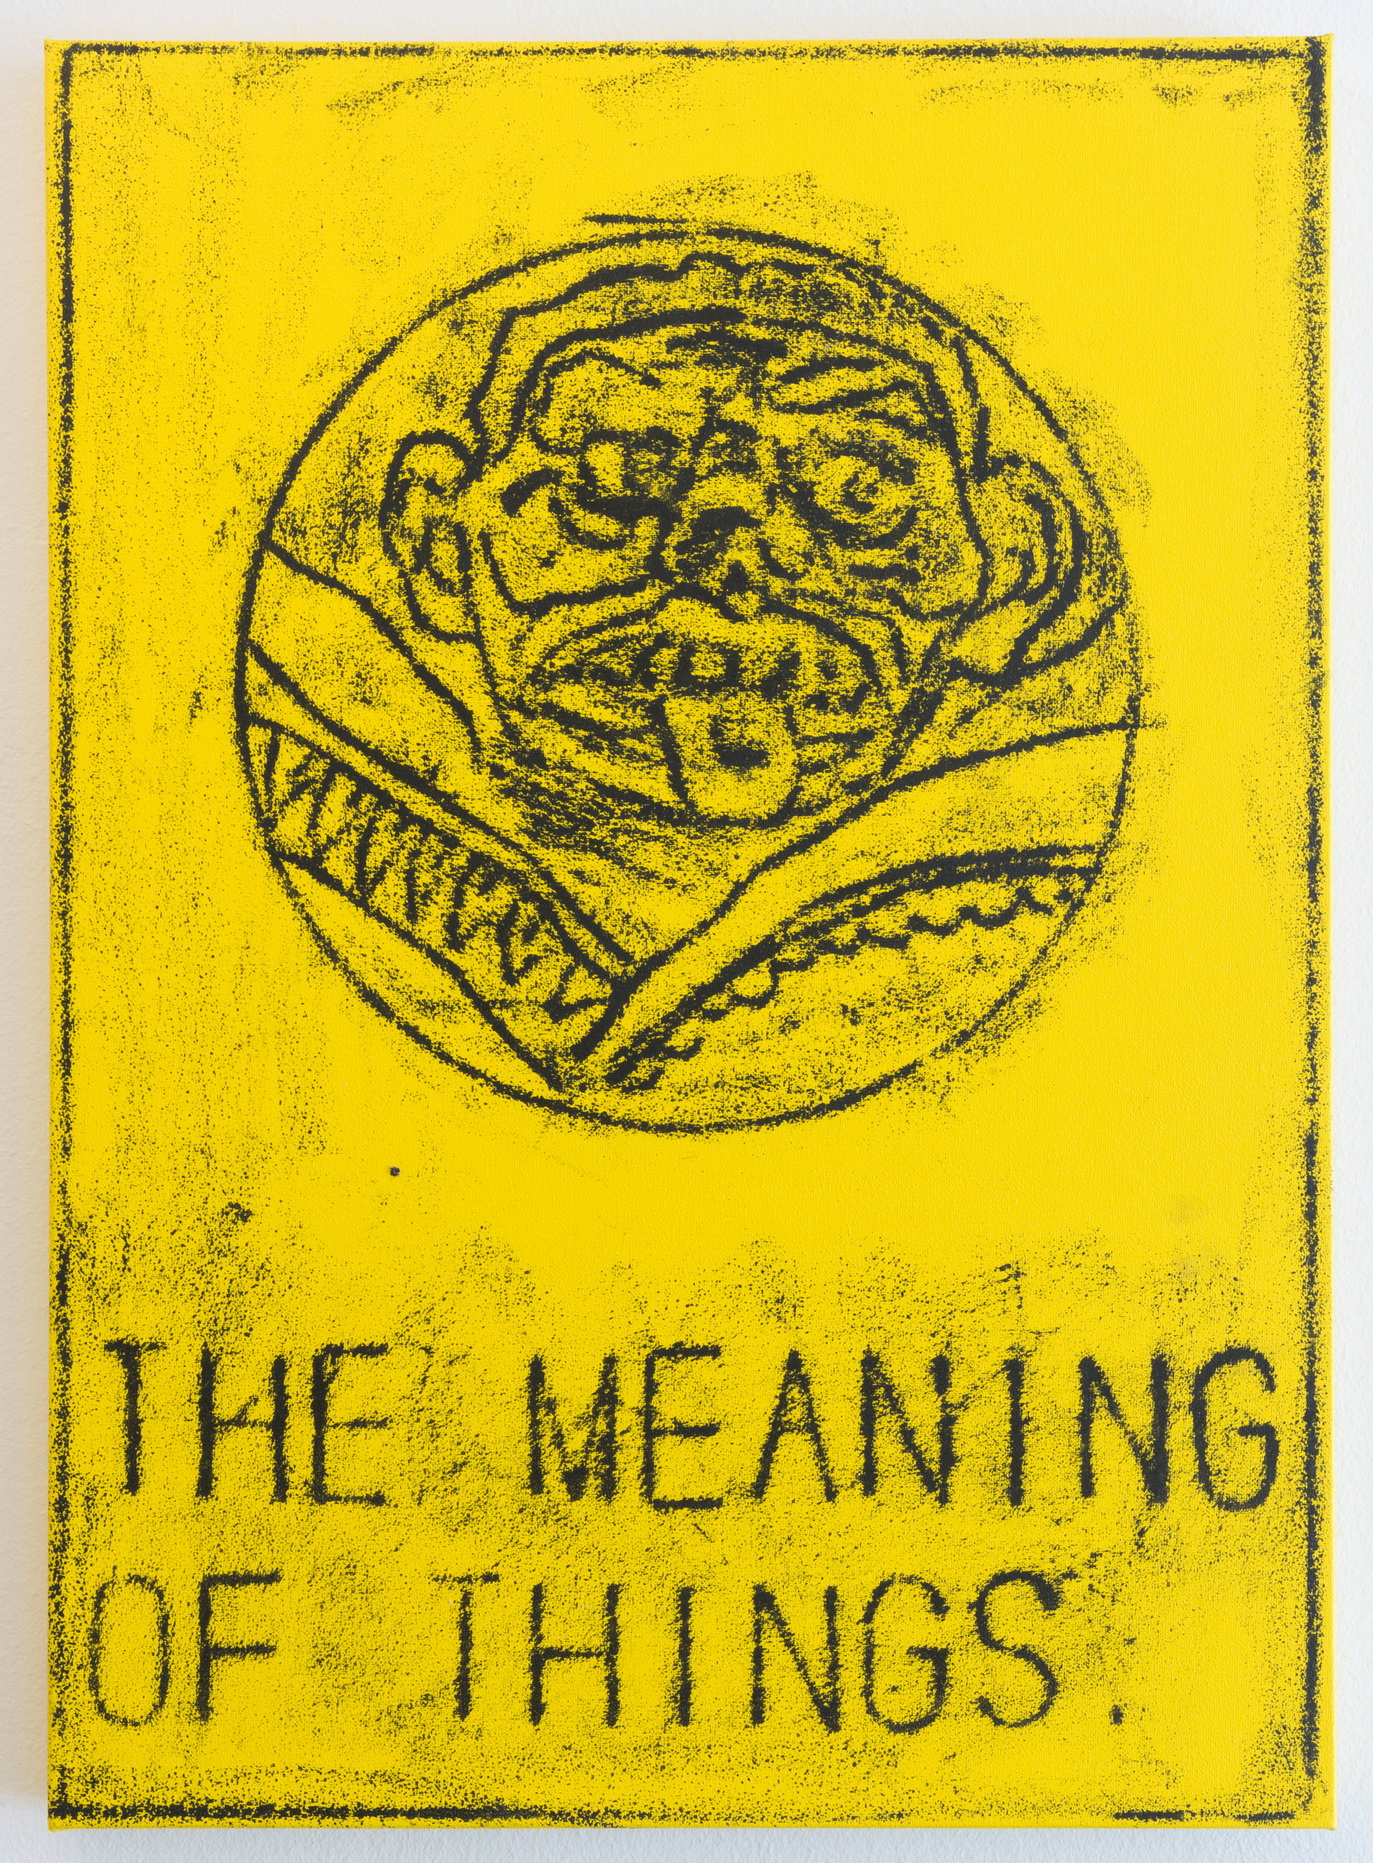 Untitled (The Meaning of Things), 2015 | The Meaning of Things | ProjecteSD